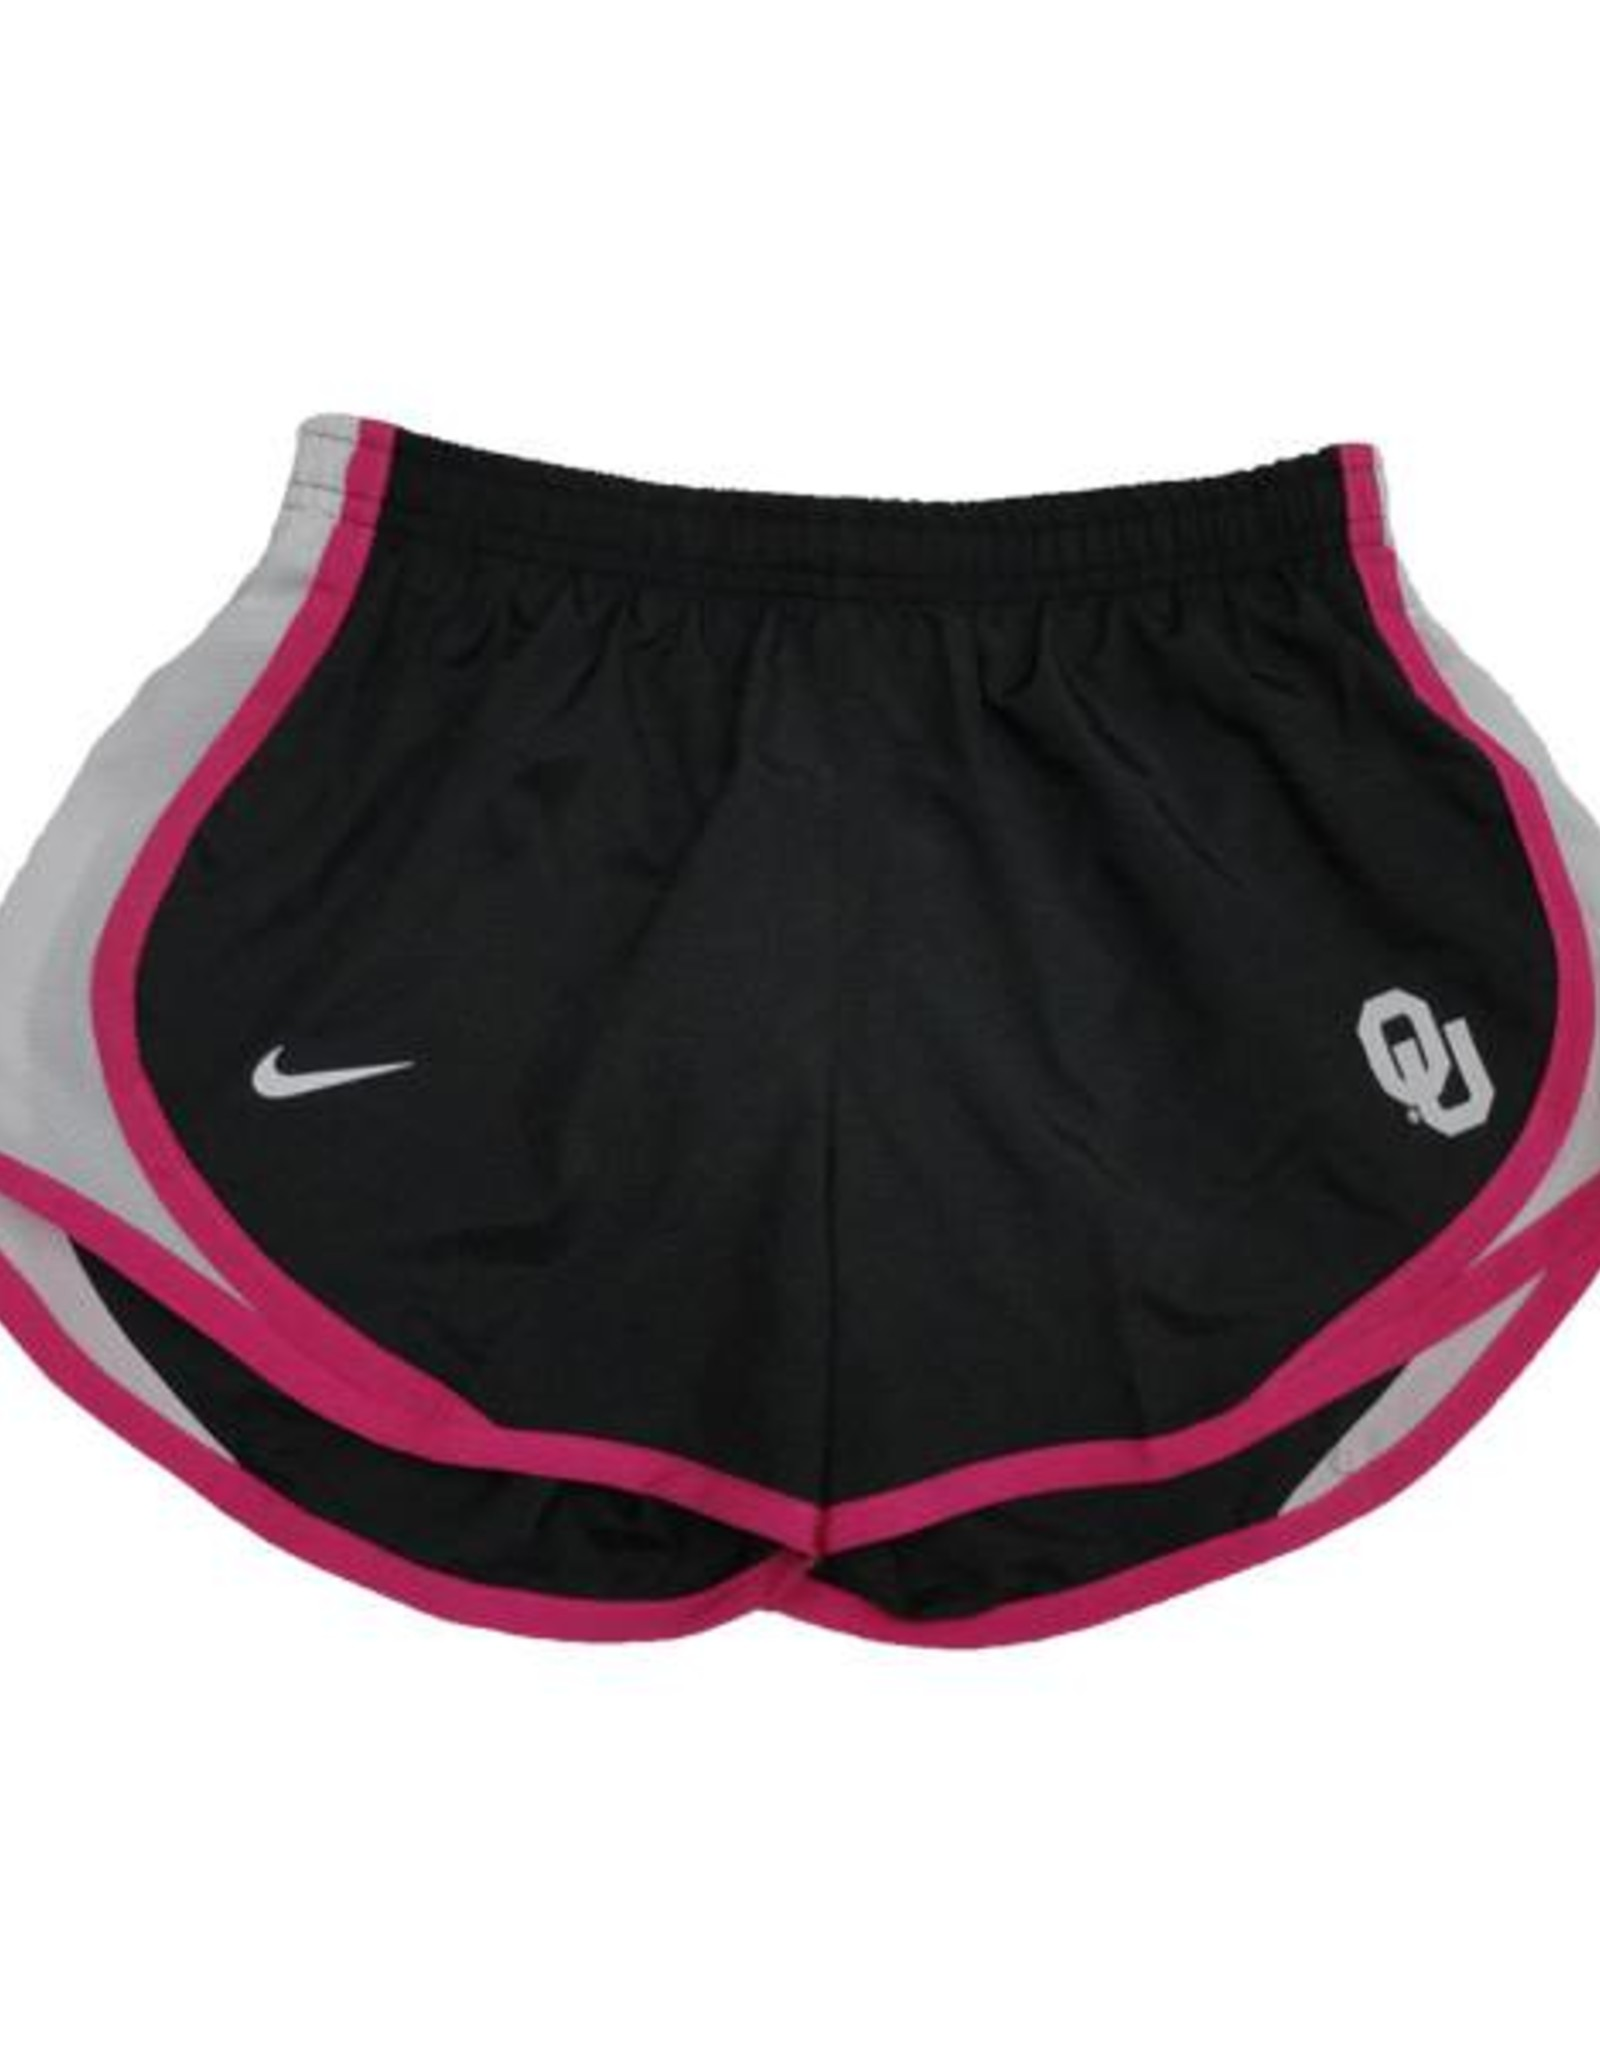 Nike Youth Nike Tempo Short Anthracite & White with Pink Trim